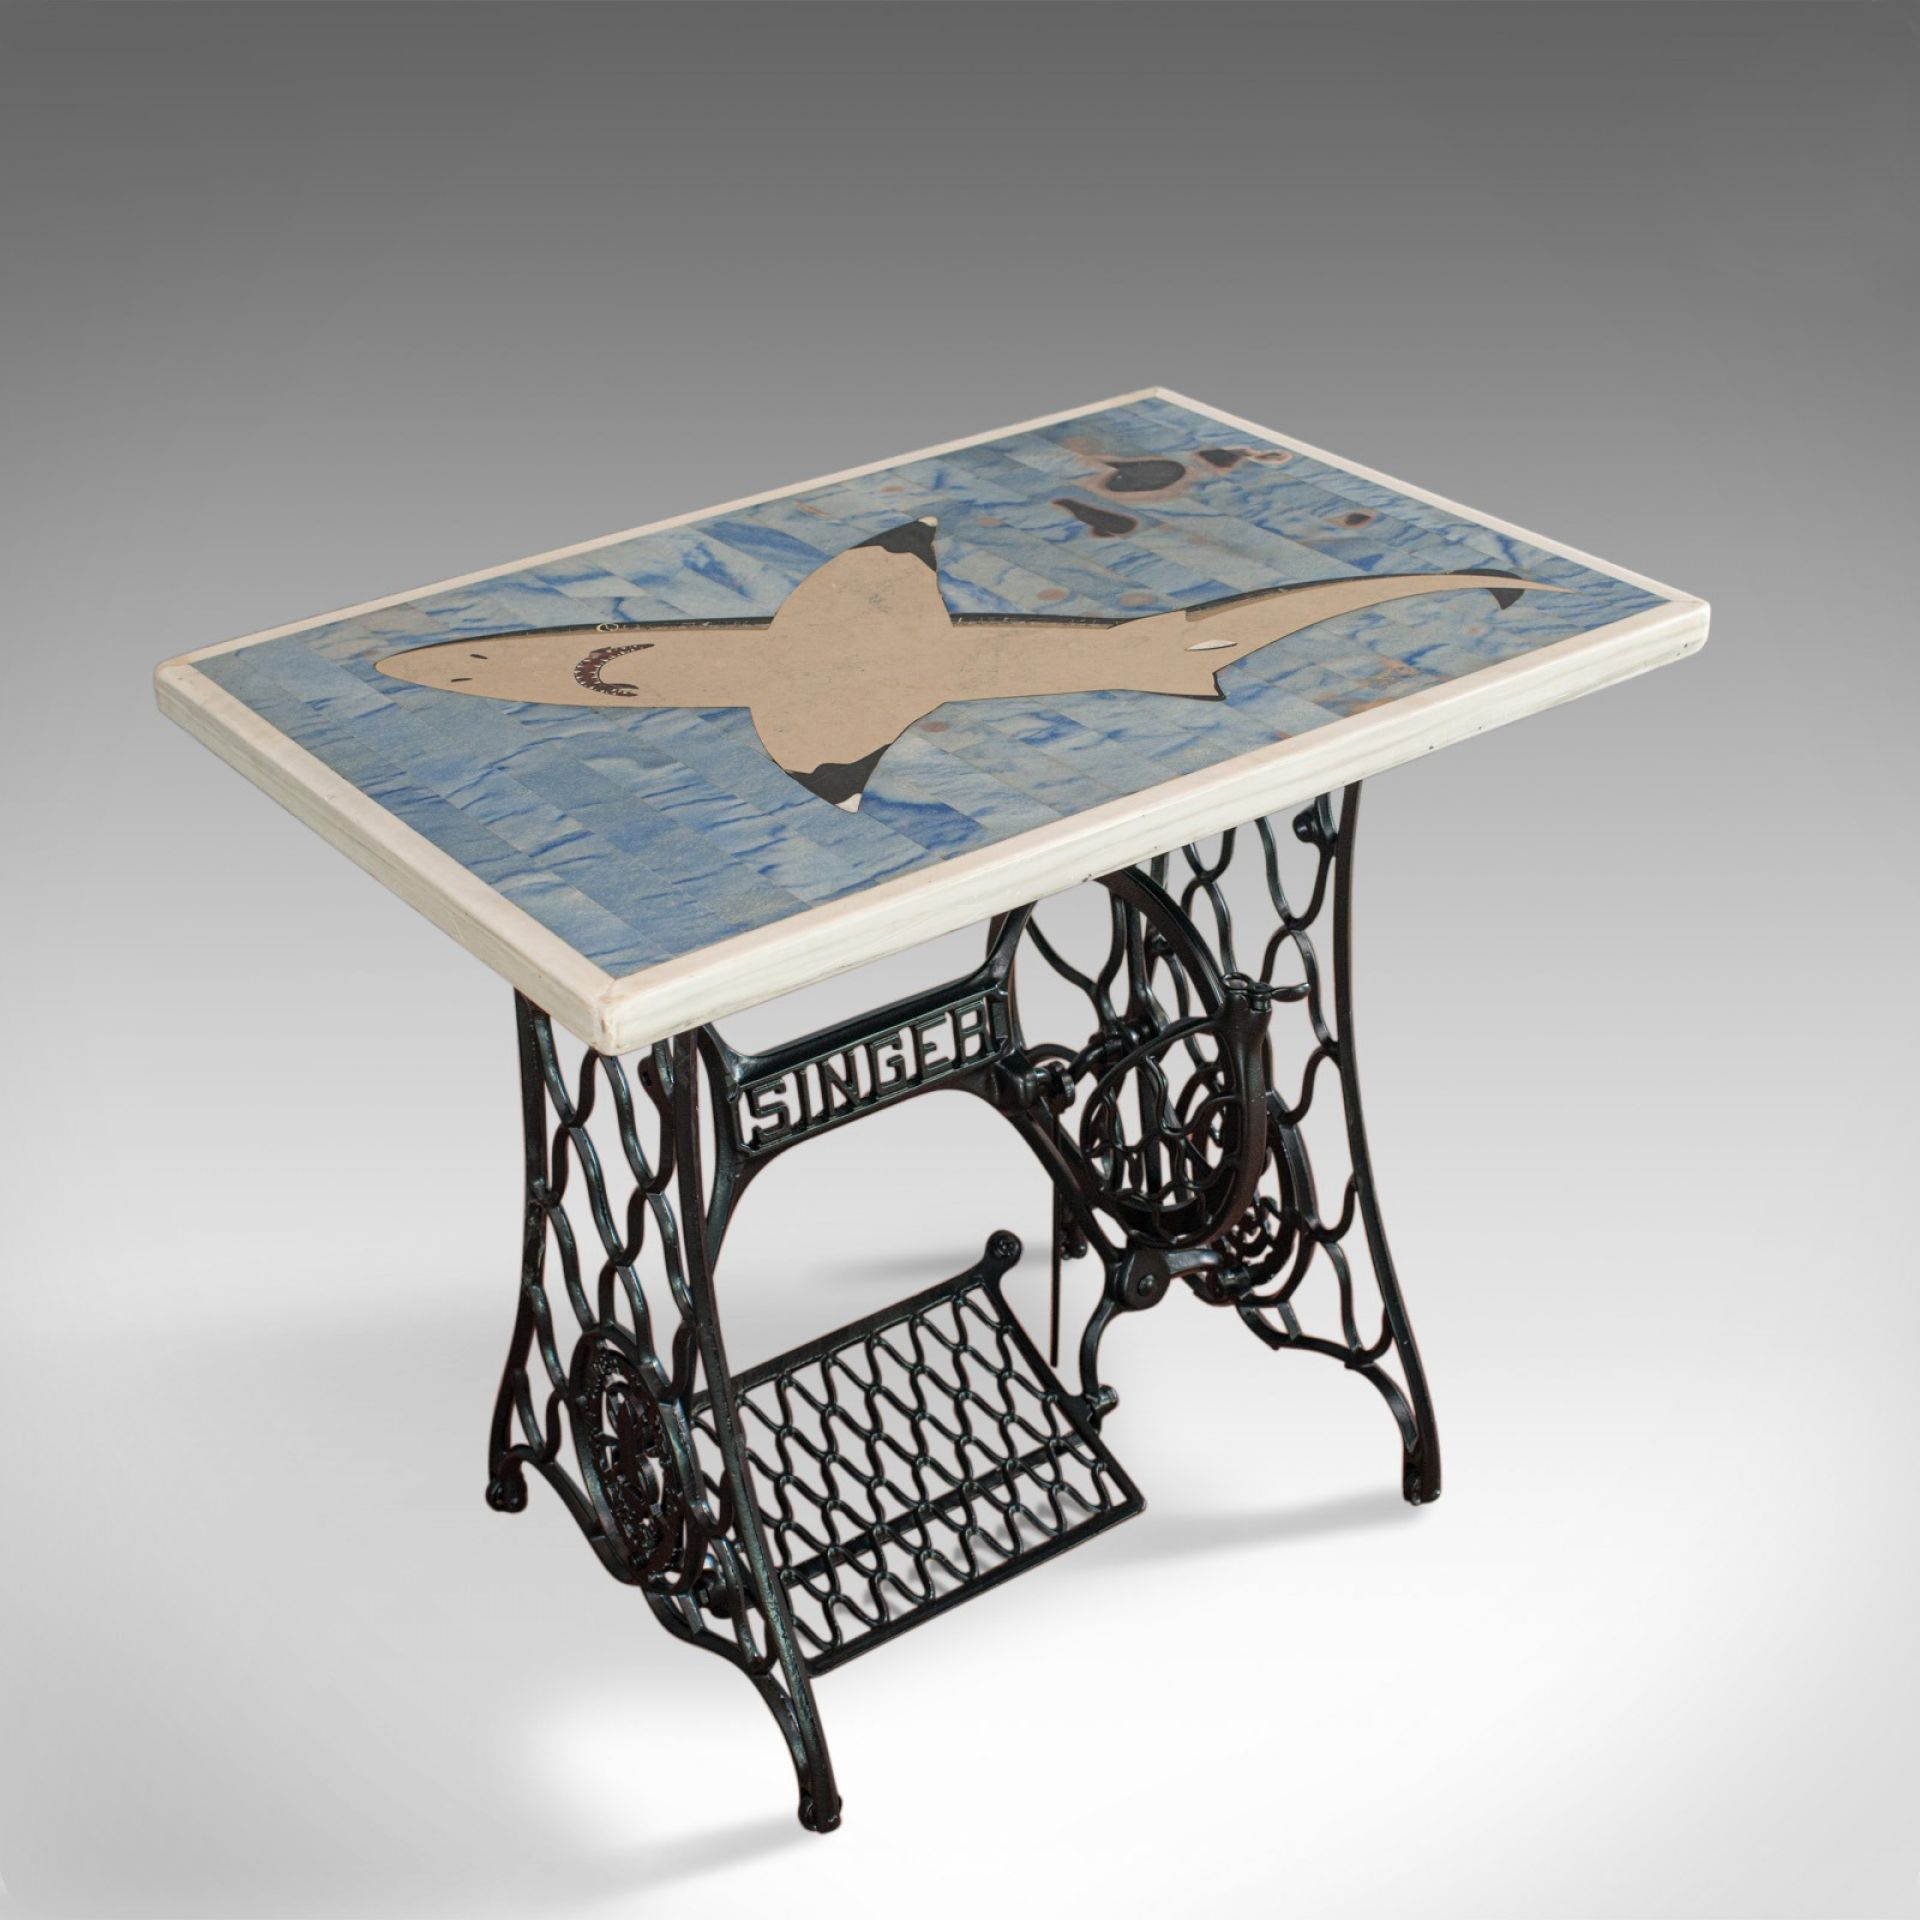 Scheiders Nightmare, Table, Shark, Singer, English, Pietra Dura, Dominic Hurley